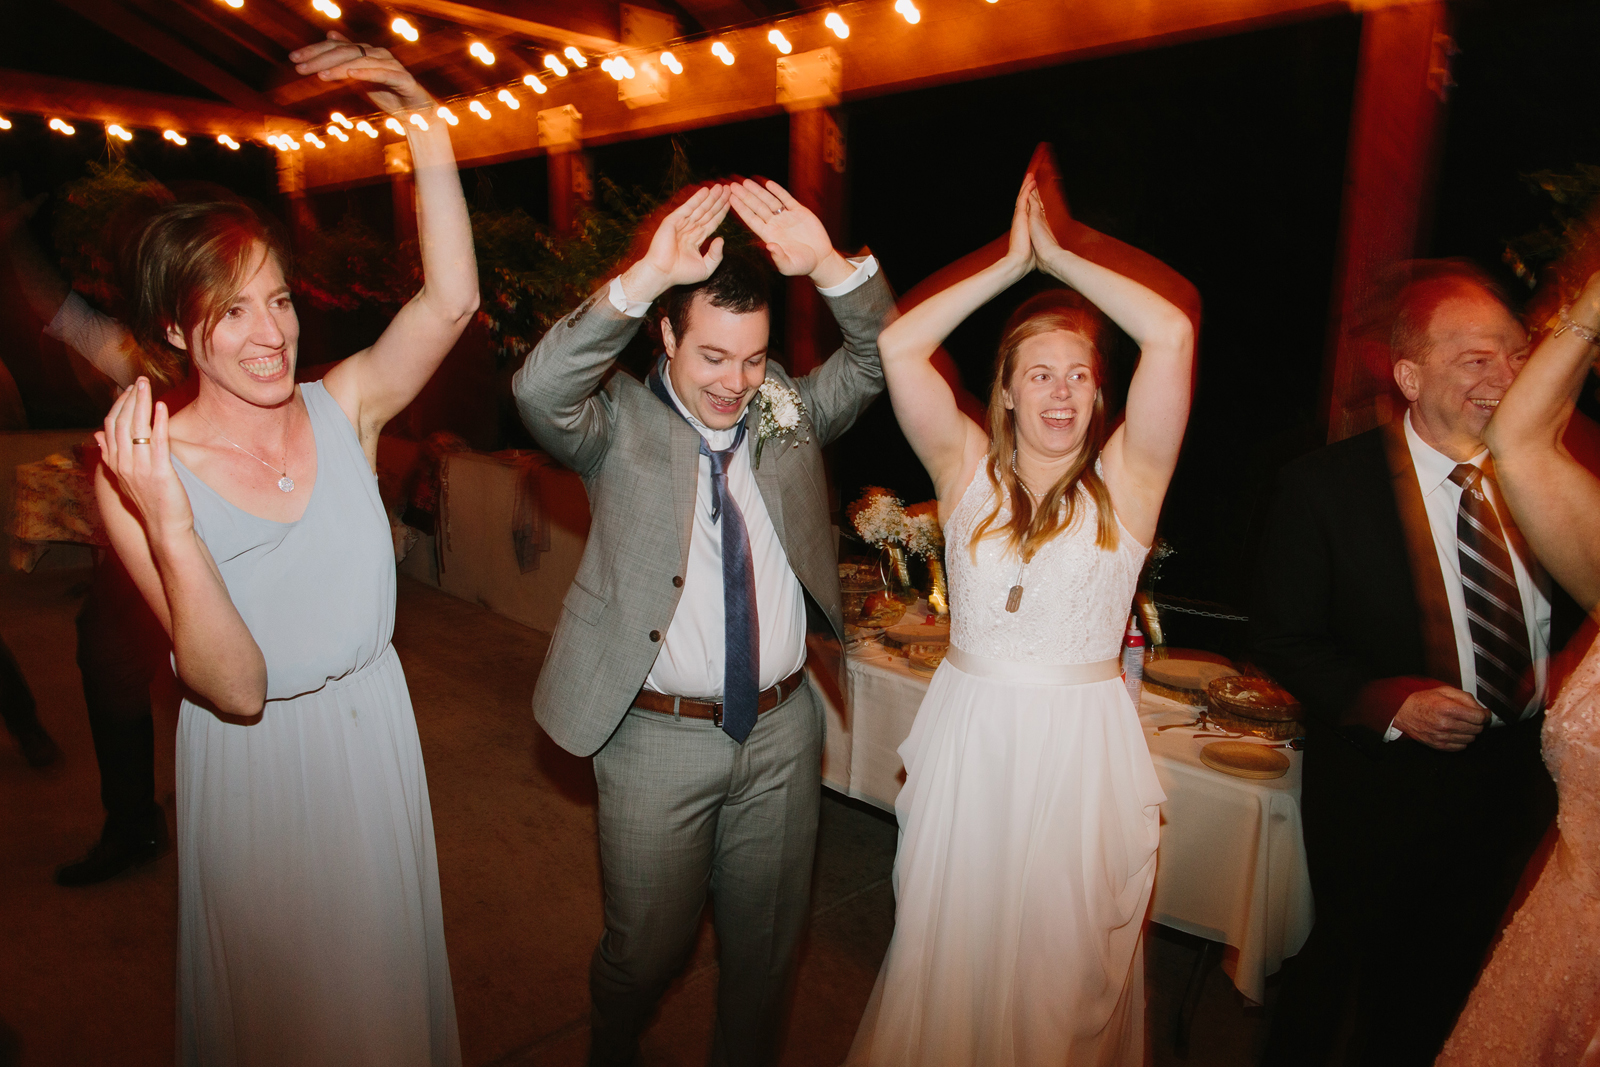 The bride and groom dance with guests during a wedding reception at Bridal Veil Lakes in Corbett, Oregon